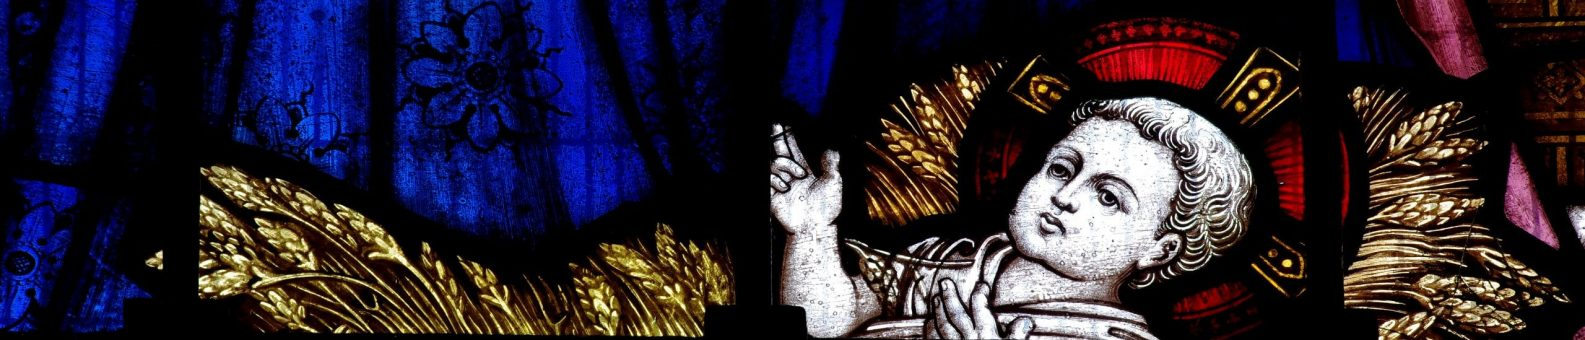 Jesus as a baby in stained glass